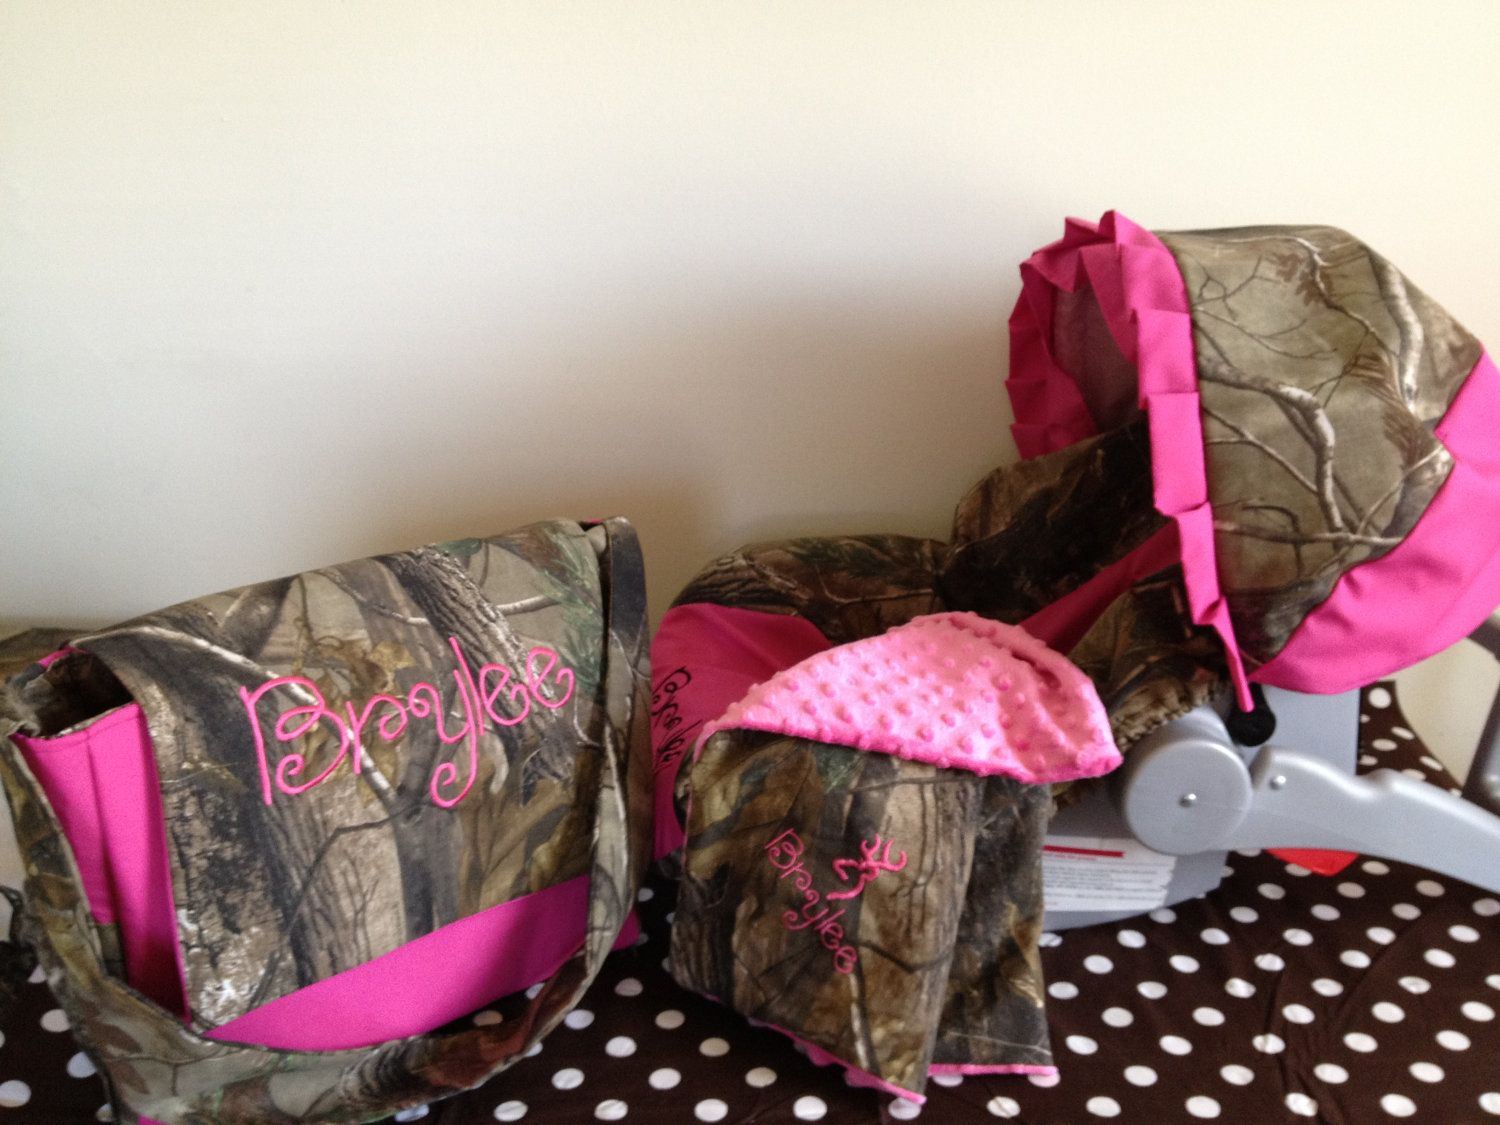 3 Piece Set REALTREE CAMO Fabric Infant Car Seat Cover And Canopy Diaper Bag Huggy Blanket With Free Monogram 10500 Via Etsy